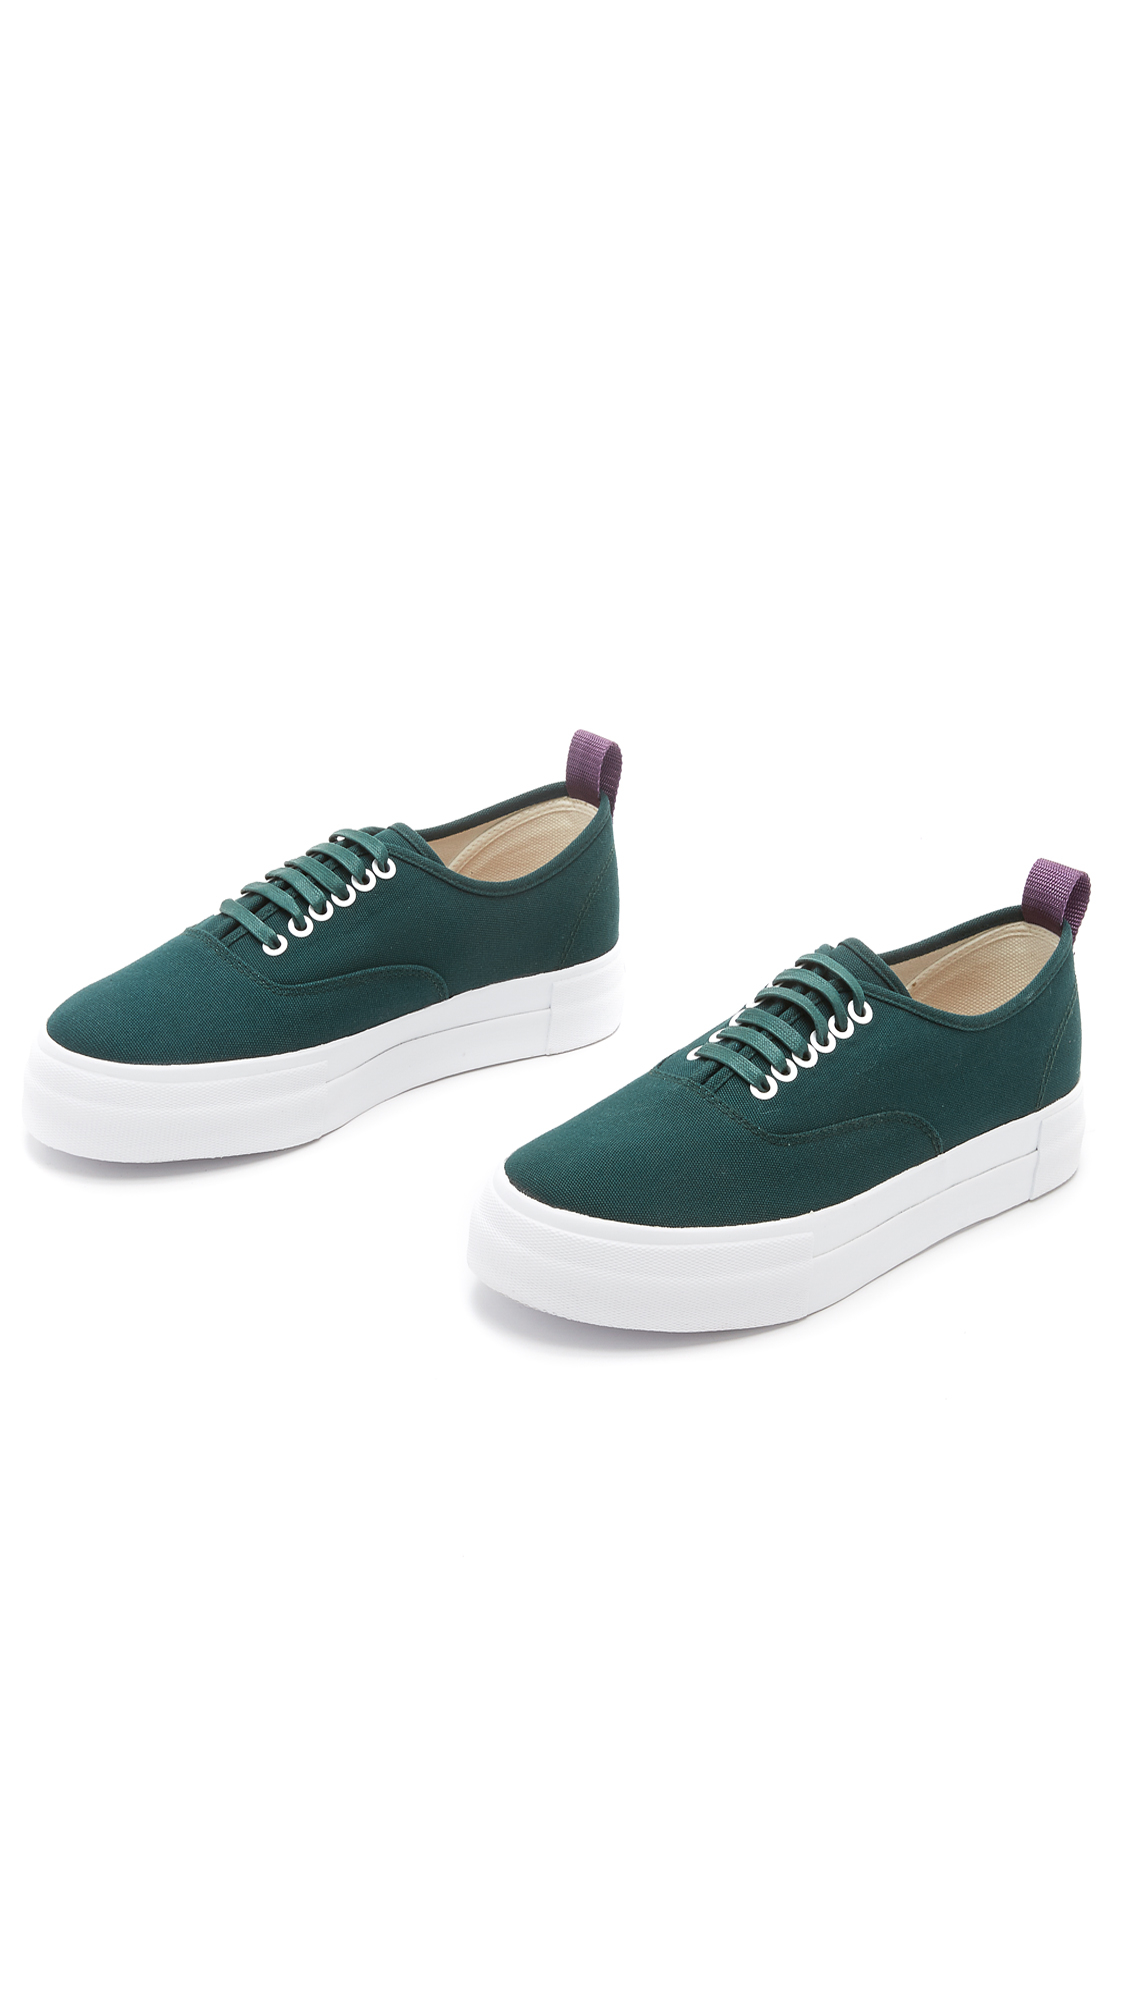 Mother sneakers - Green Eytys 0bybWd